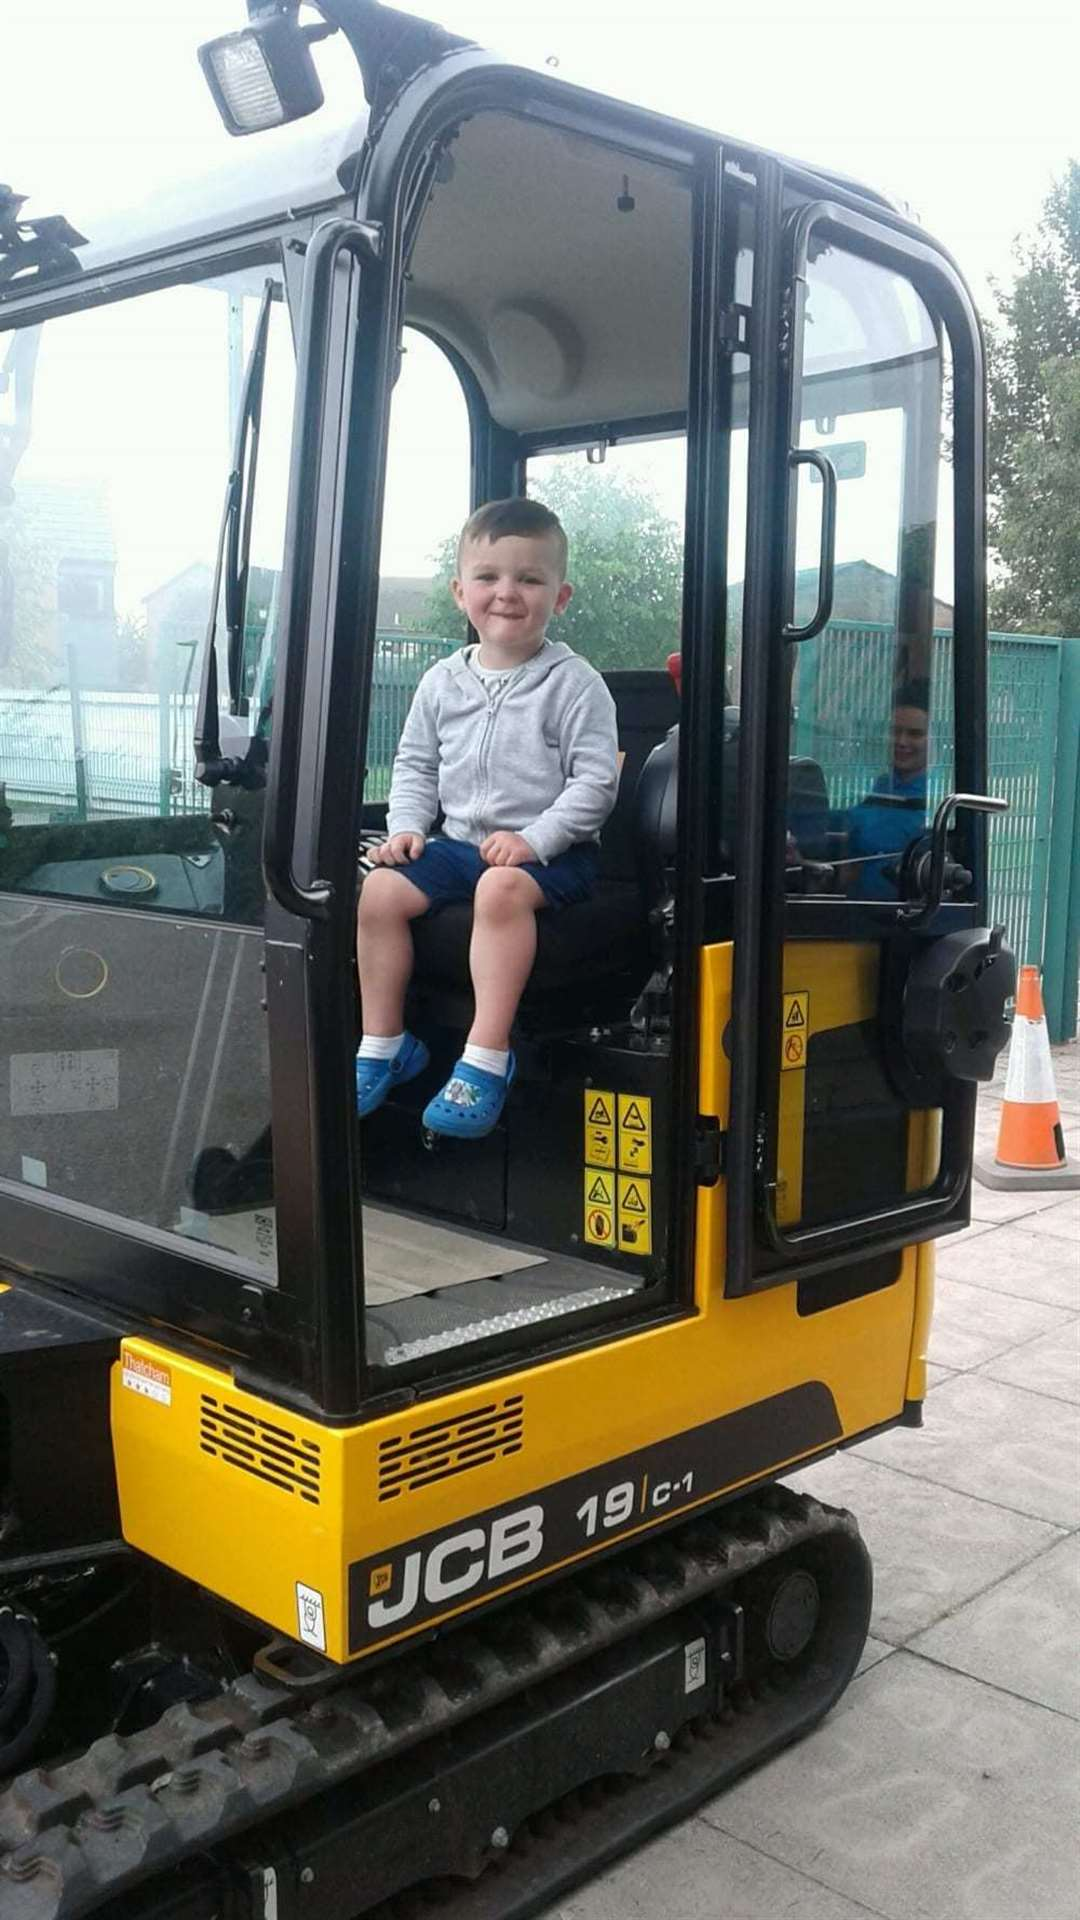 Youngsters explored the JCB digger on Monday. (13121672)